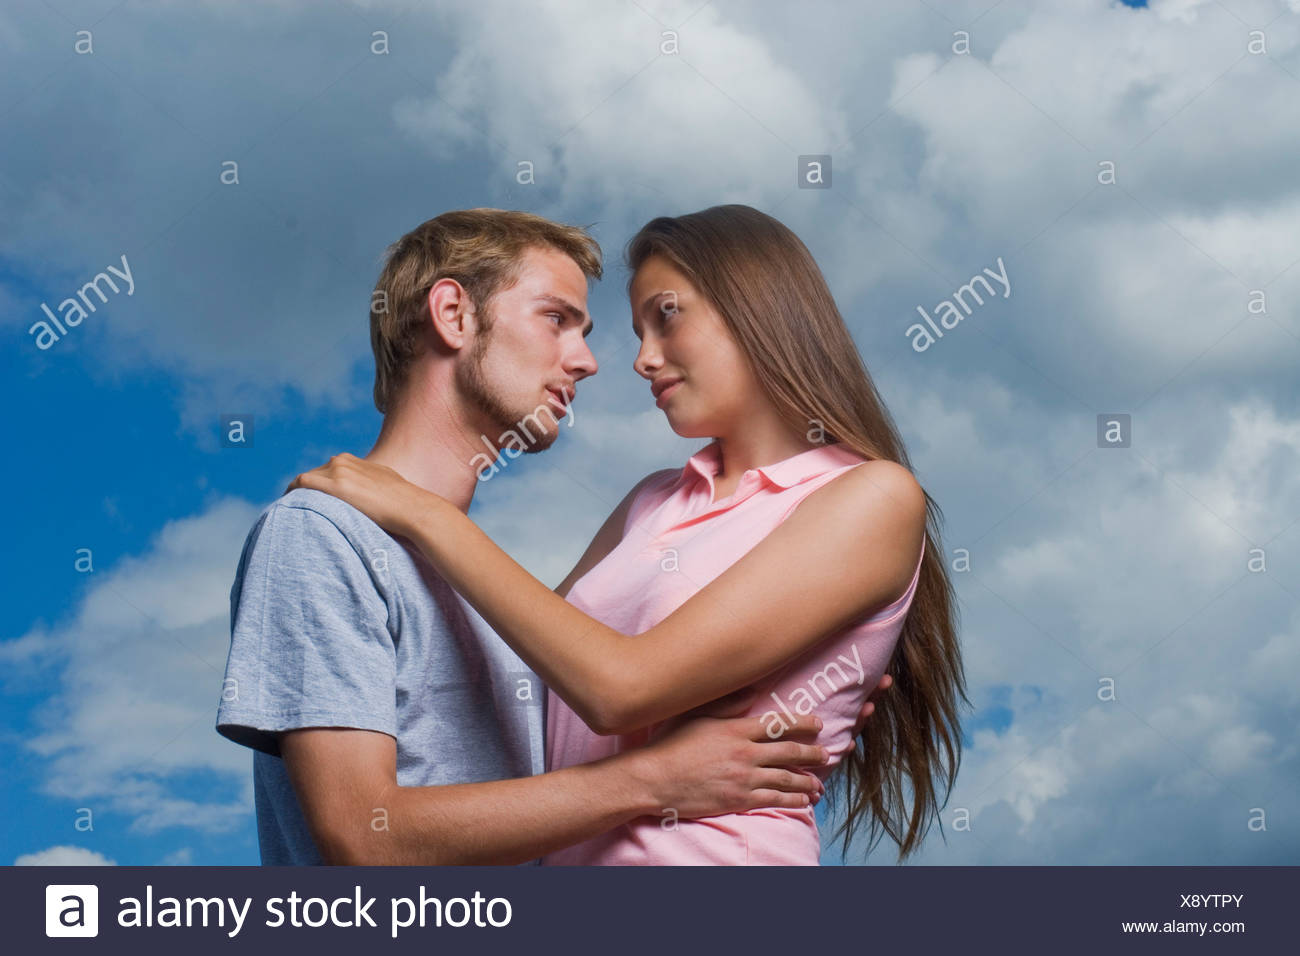 portriat of young couple tenderly looking at each other - Stock Image